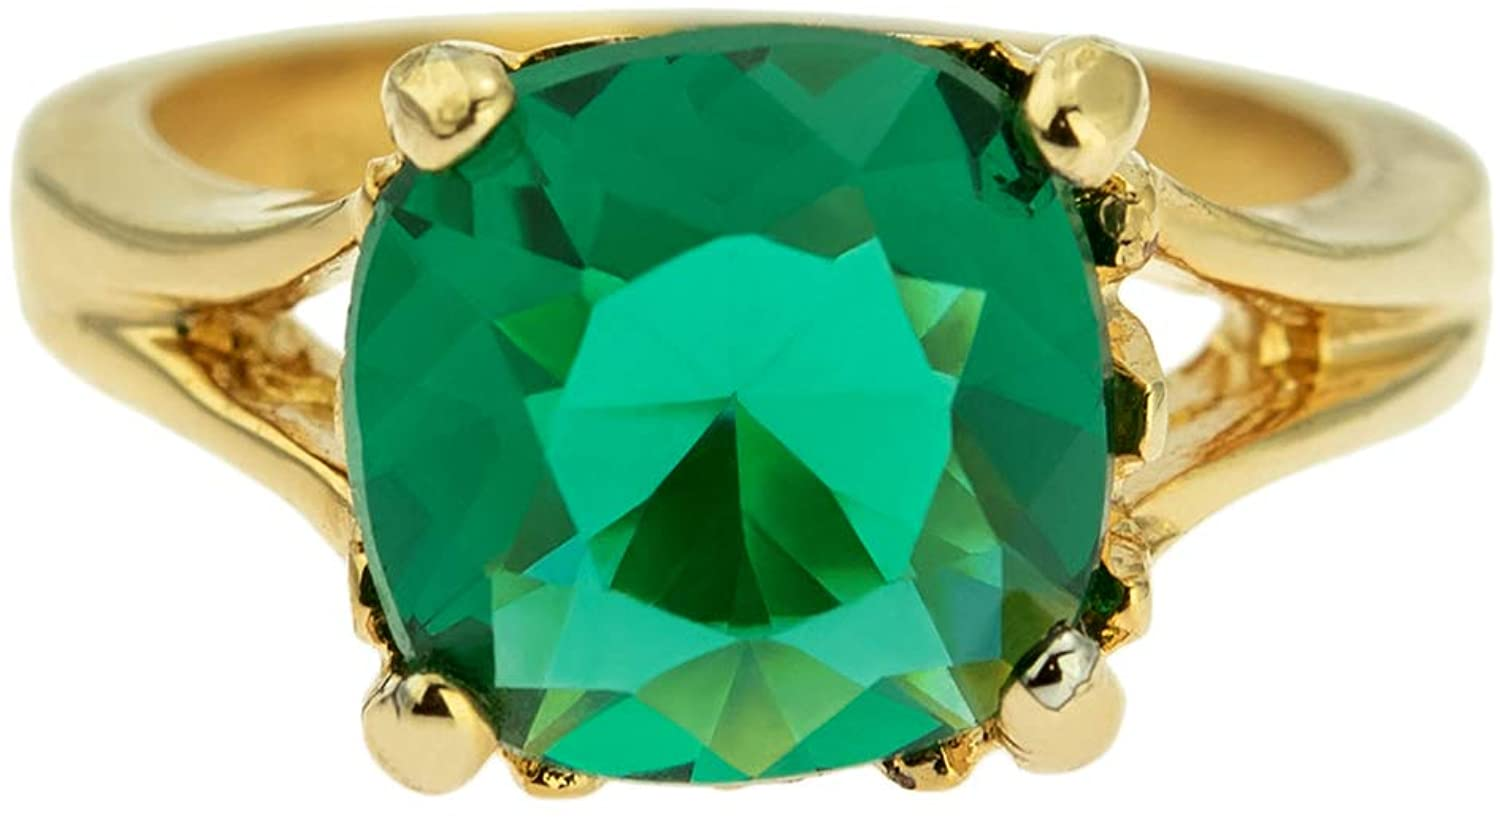 Providence Vintage Jewelry Emerald Swarovski Crystal 18k Gold Plated Ring